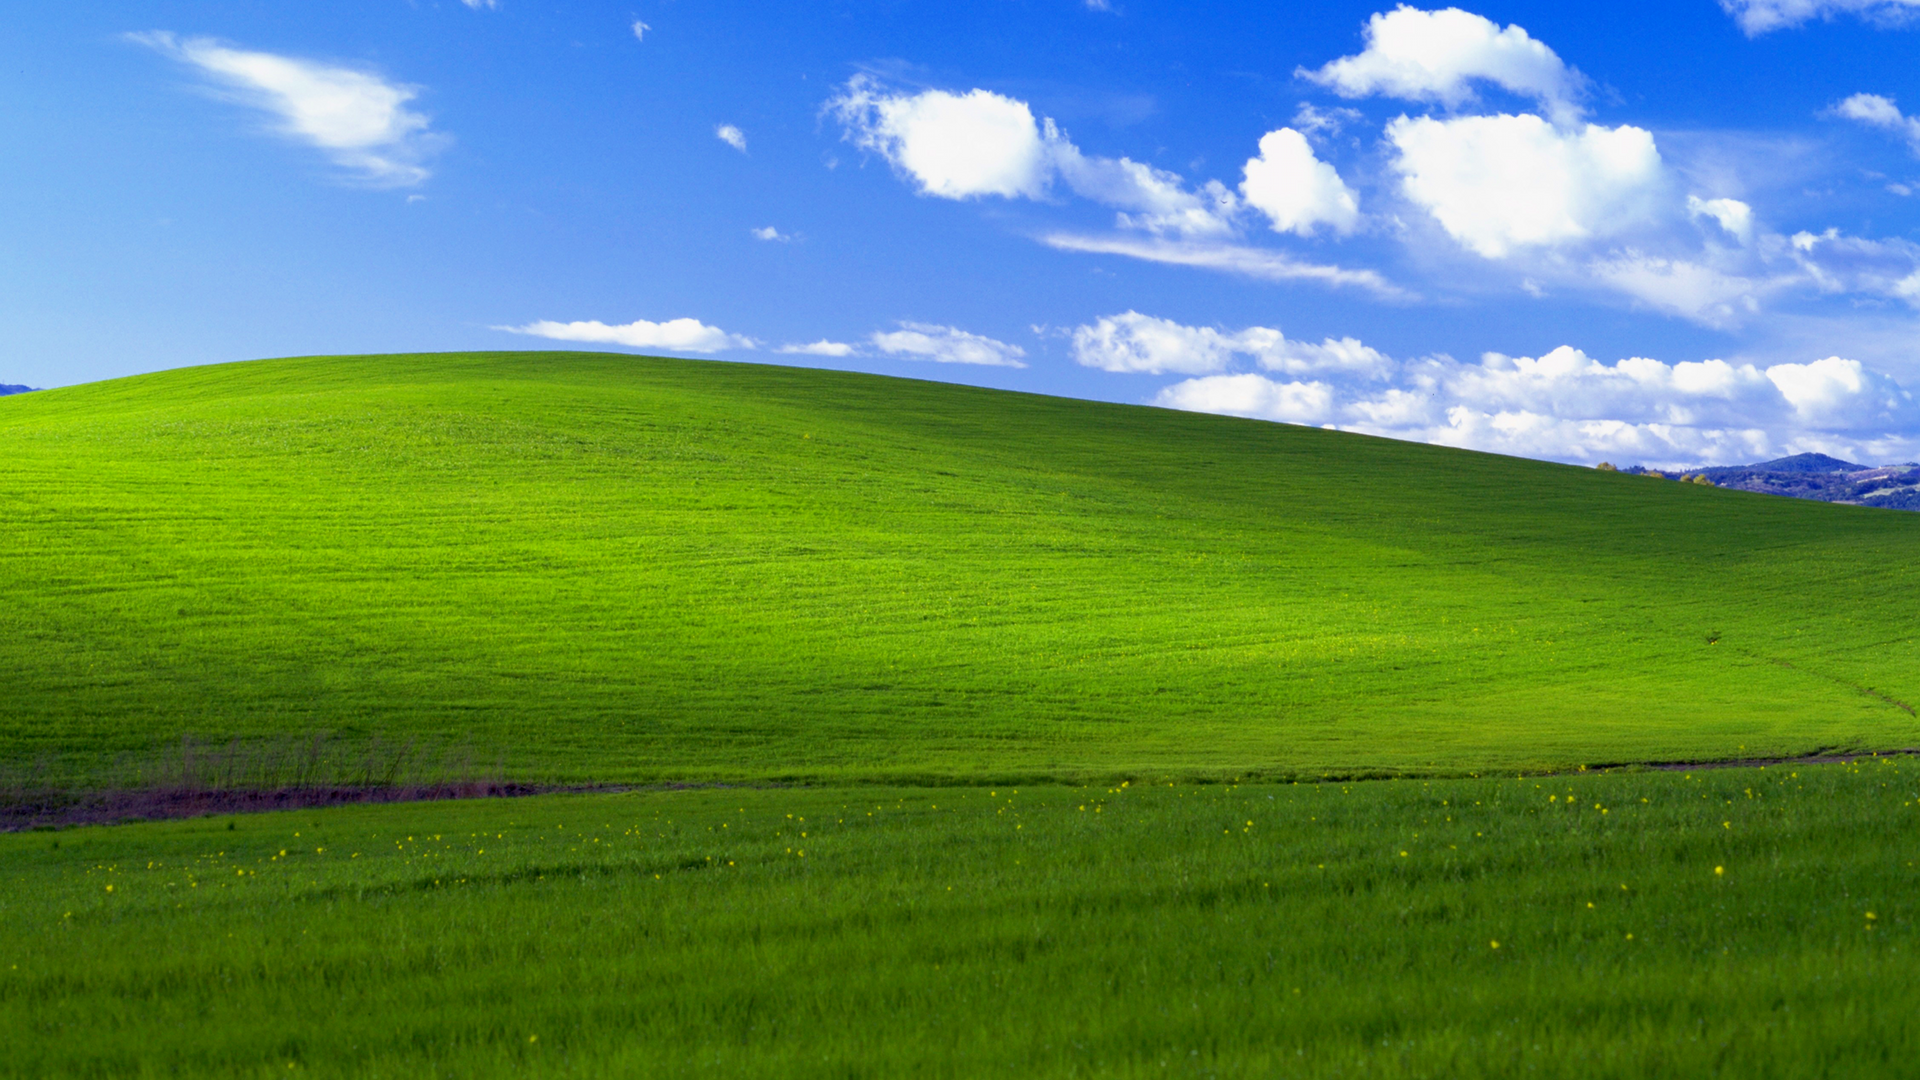 Windows xp bliss background recreated in minecraft for Window background